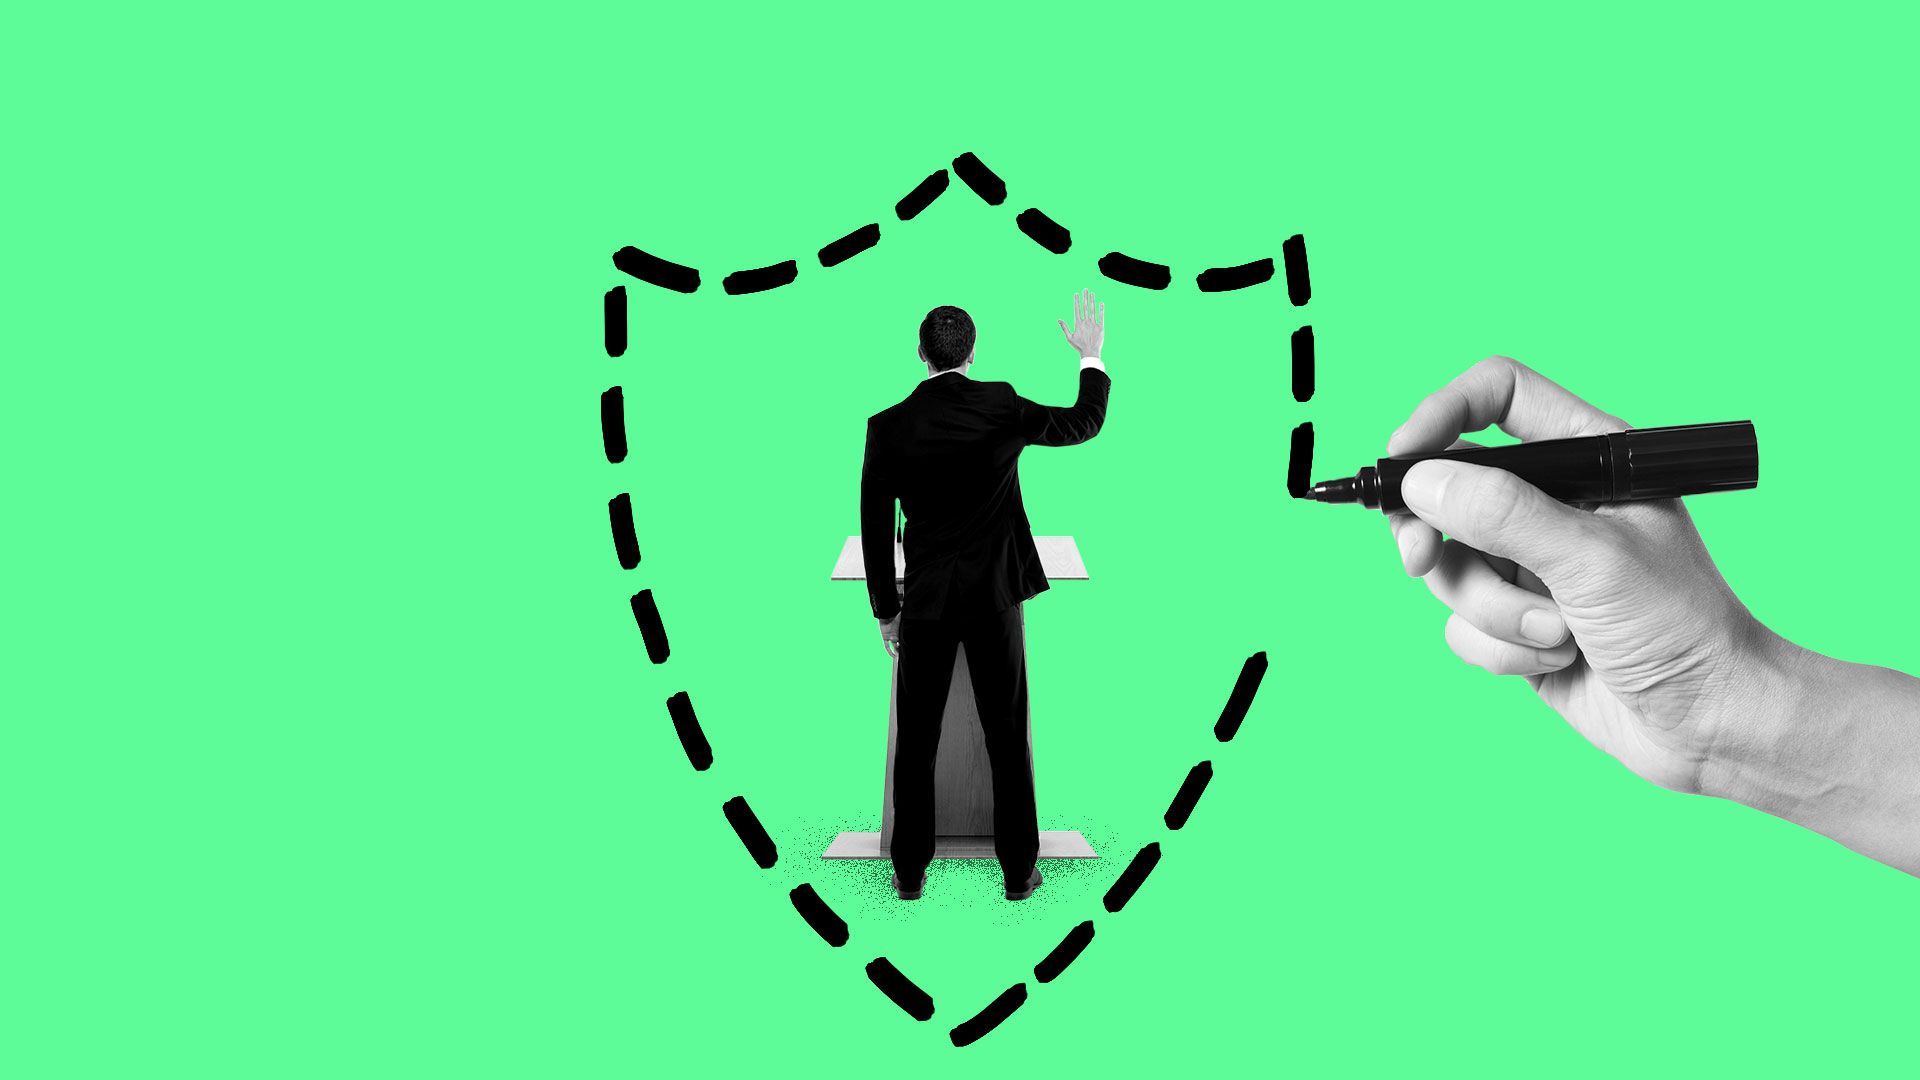 Illustration of a hand drawing a shield shape around a candidate behind a podium.